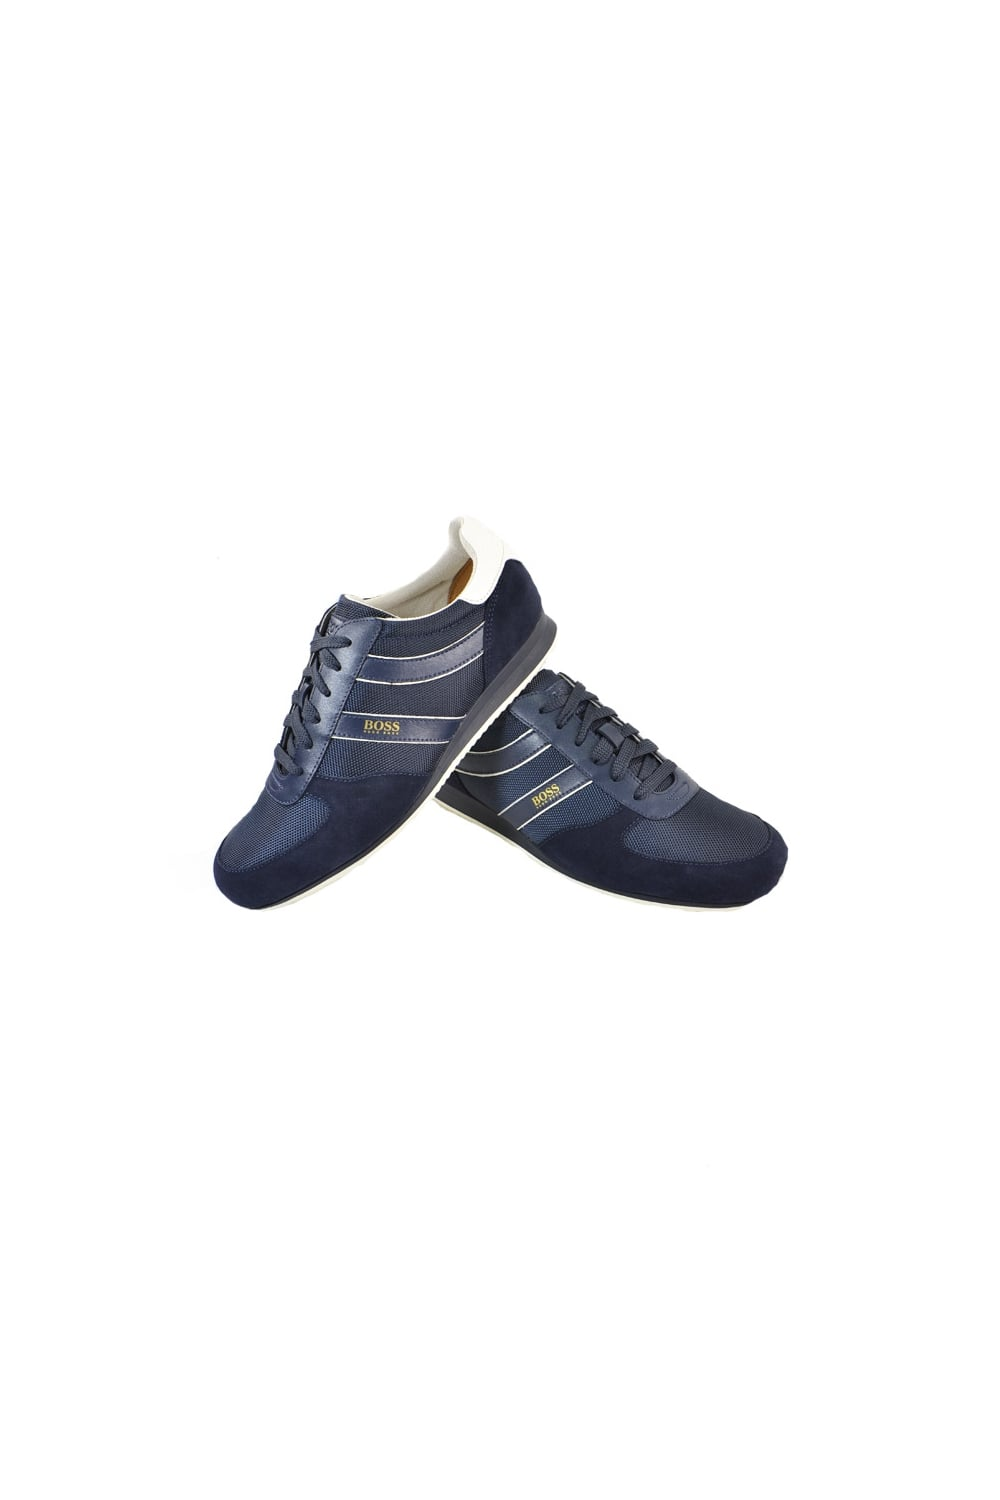 0a65d80cf92 Hugo Boss Orange Orland Lowp Ny 1 Trainers Dark Blue - Footwear from ...